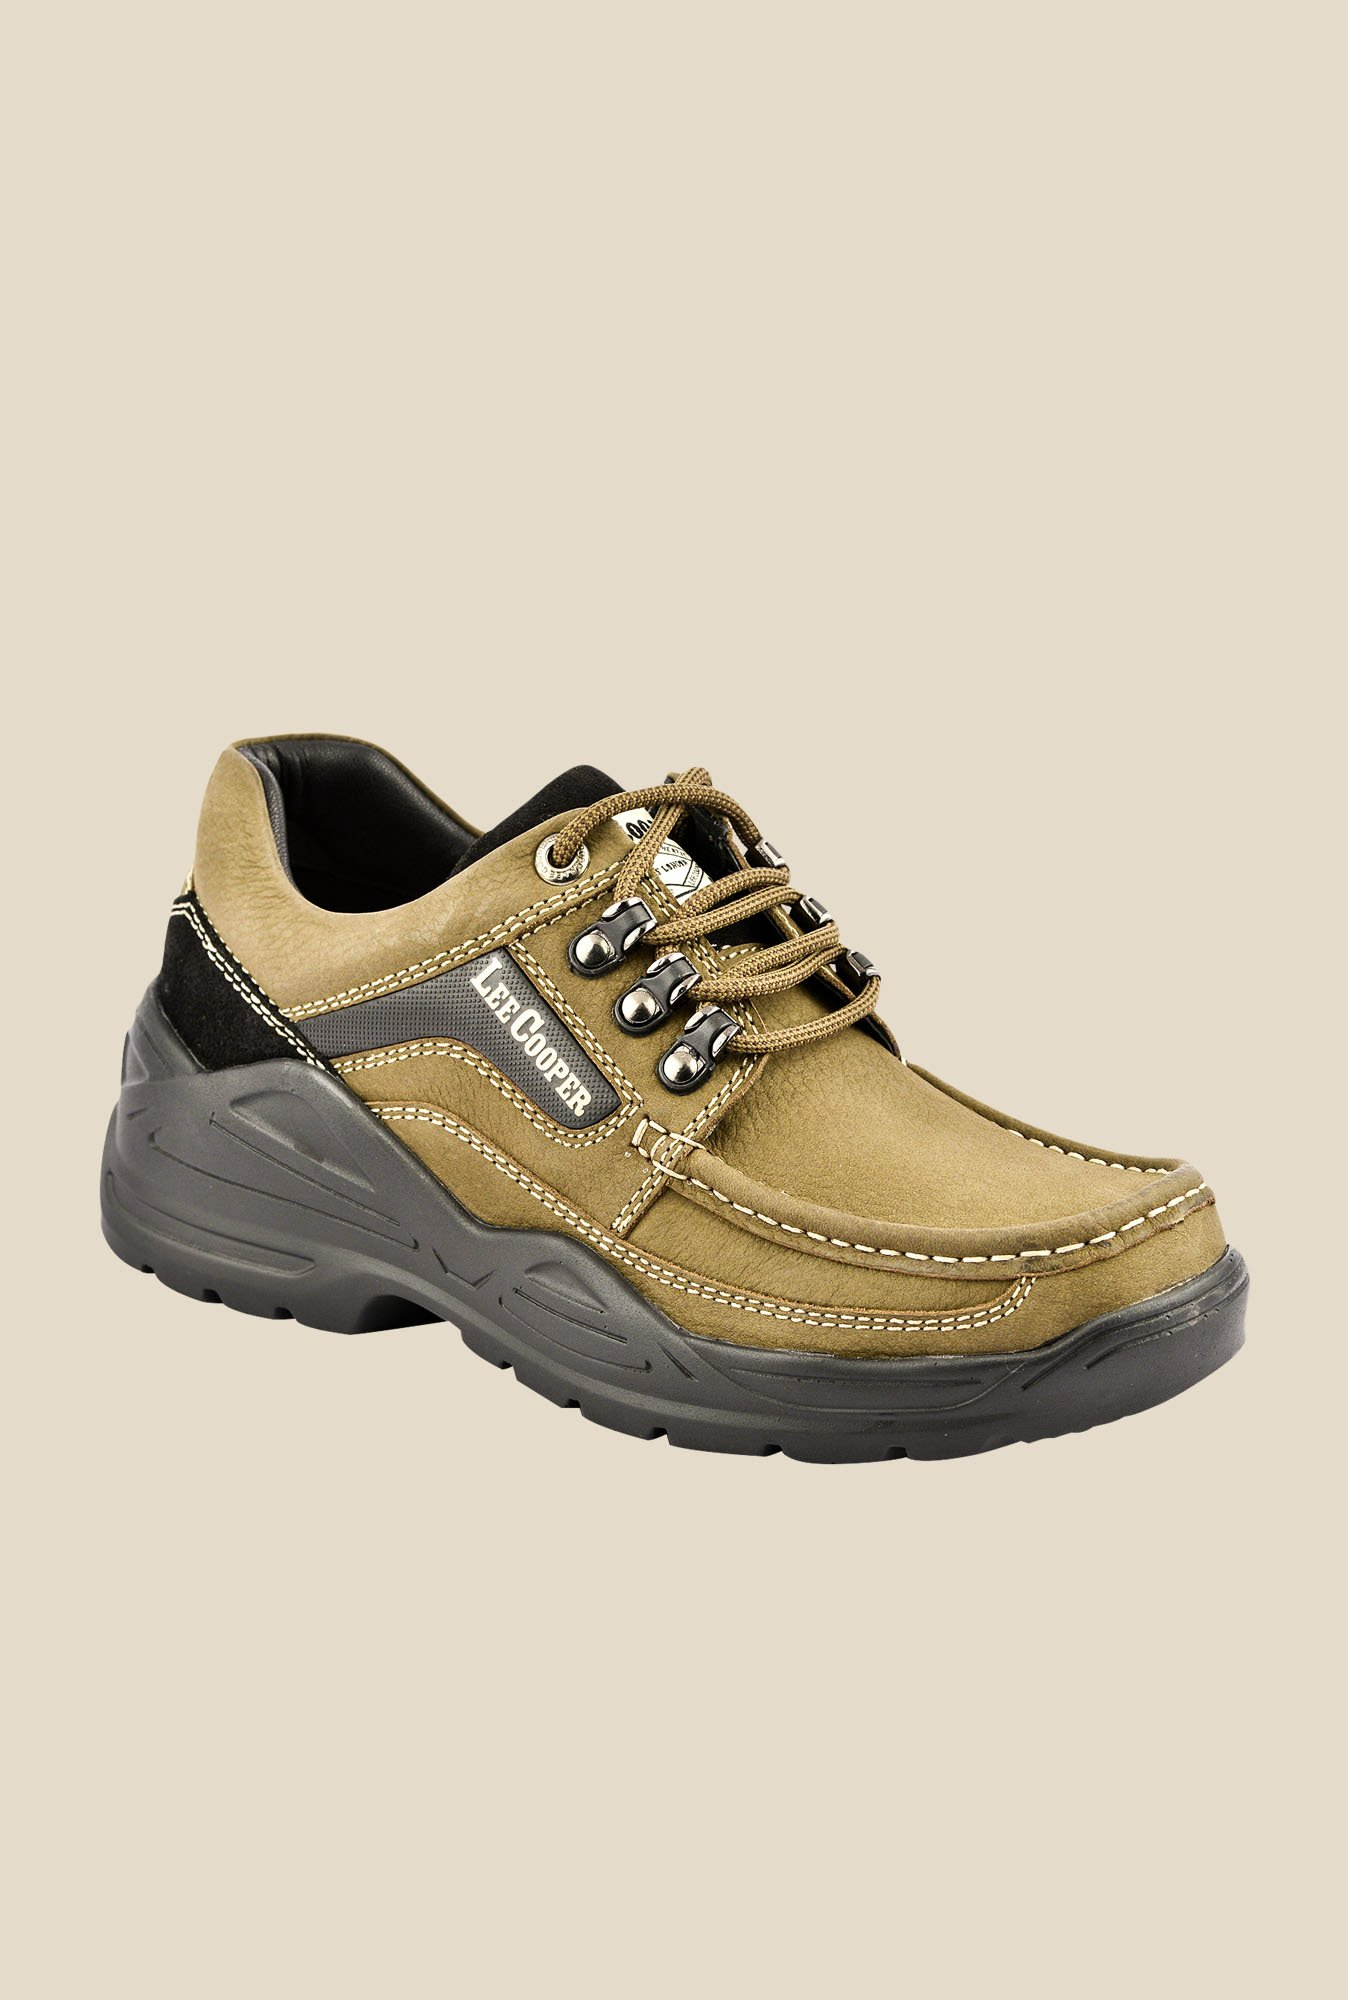 Lee Cooper Olive Casual Shoes